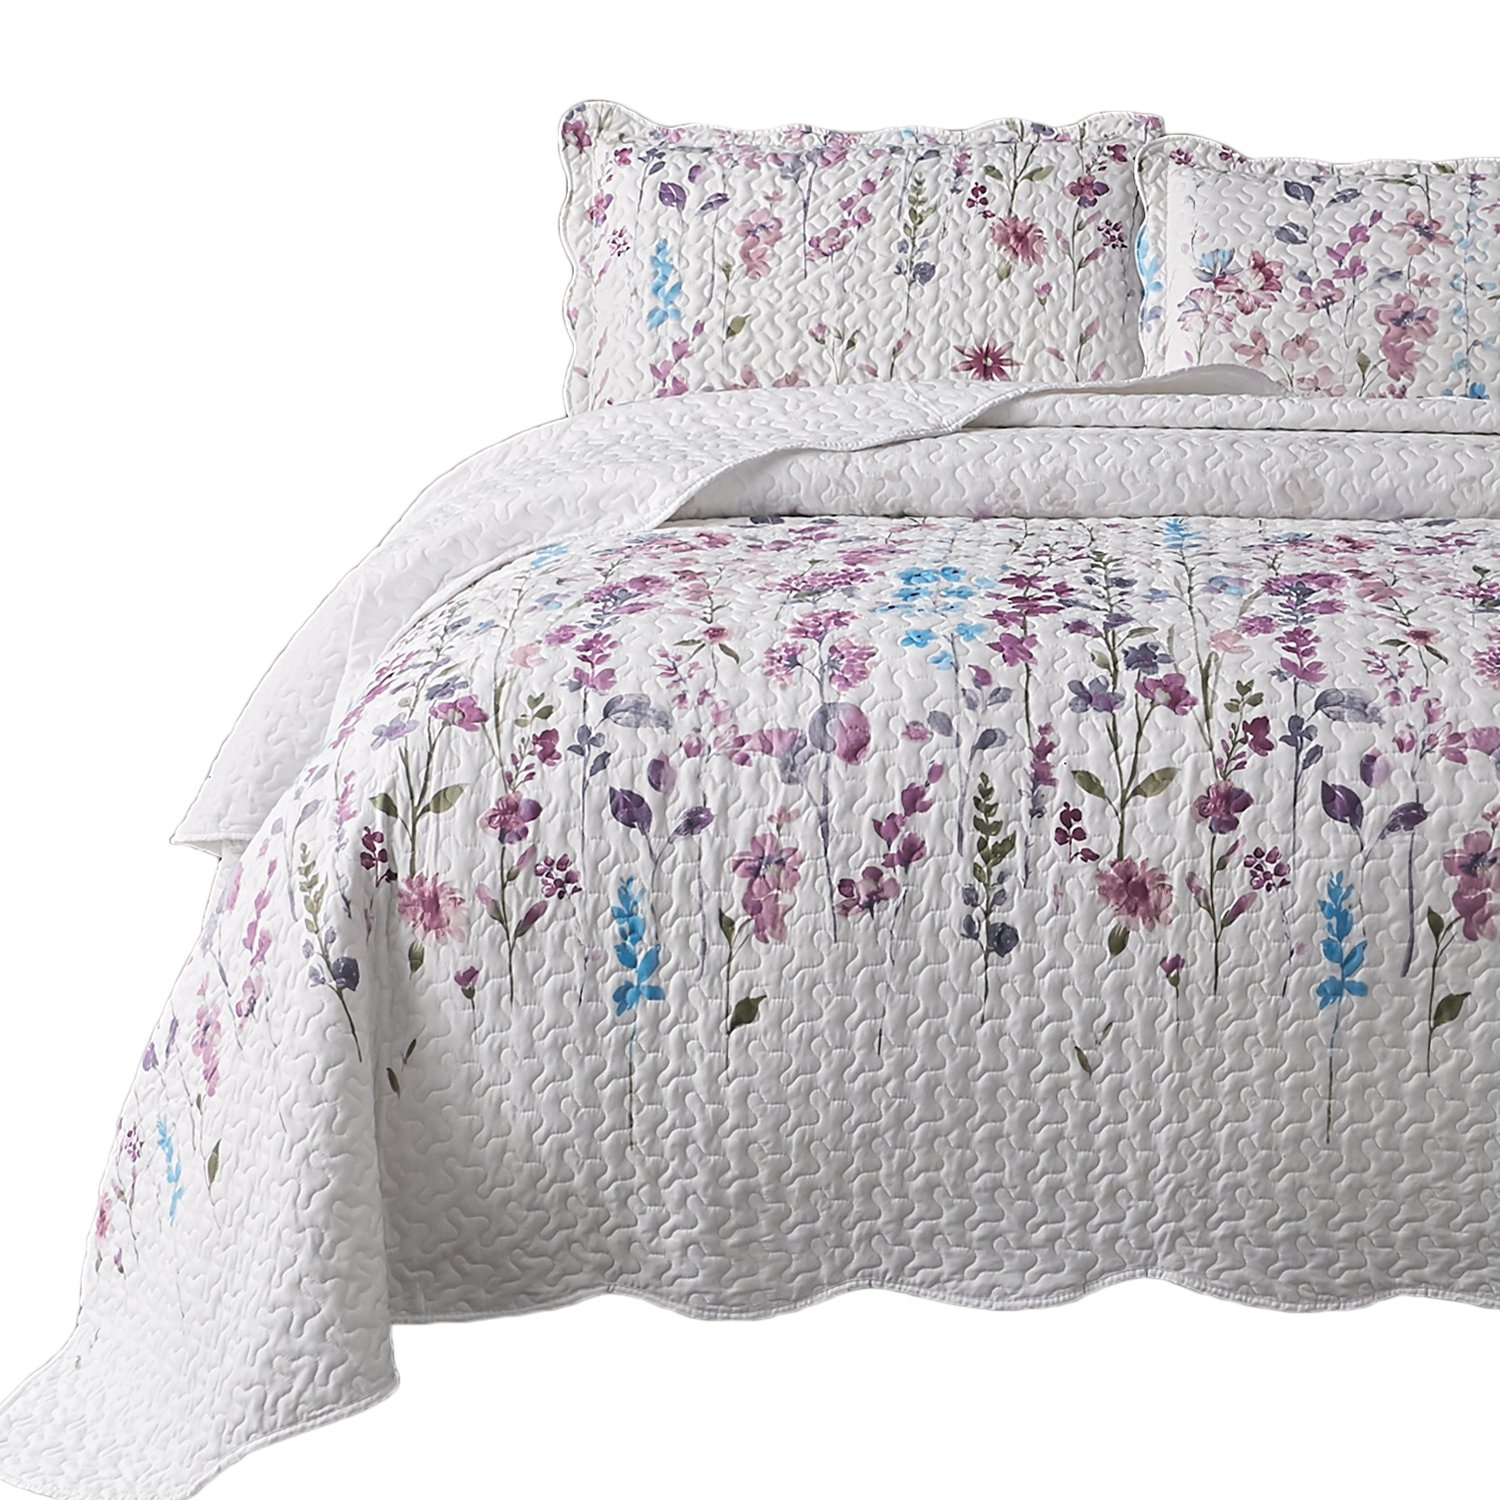 Bedsure Printed Quilt Coverlet Set Full/Queen(86''x96'') Lilac Floral Pattern Lightweight Hypoallergenic Microfiber Bouquet